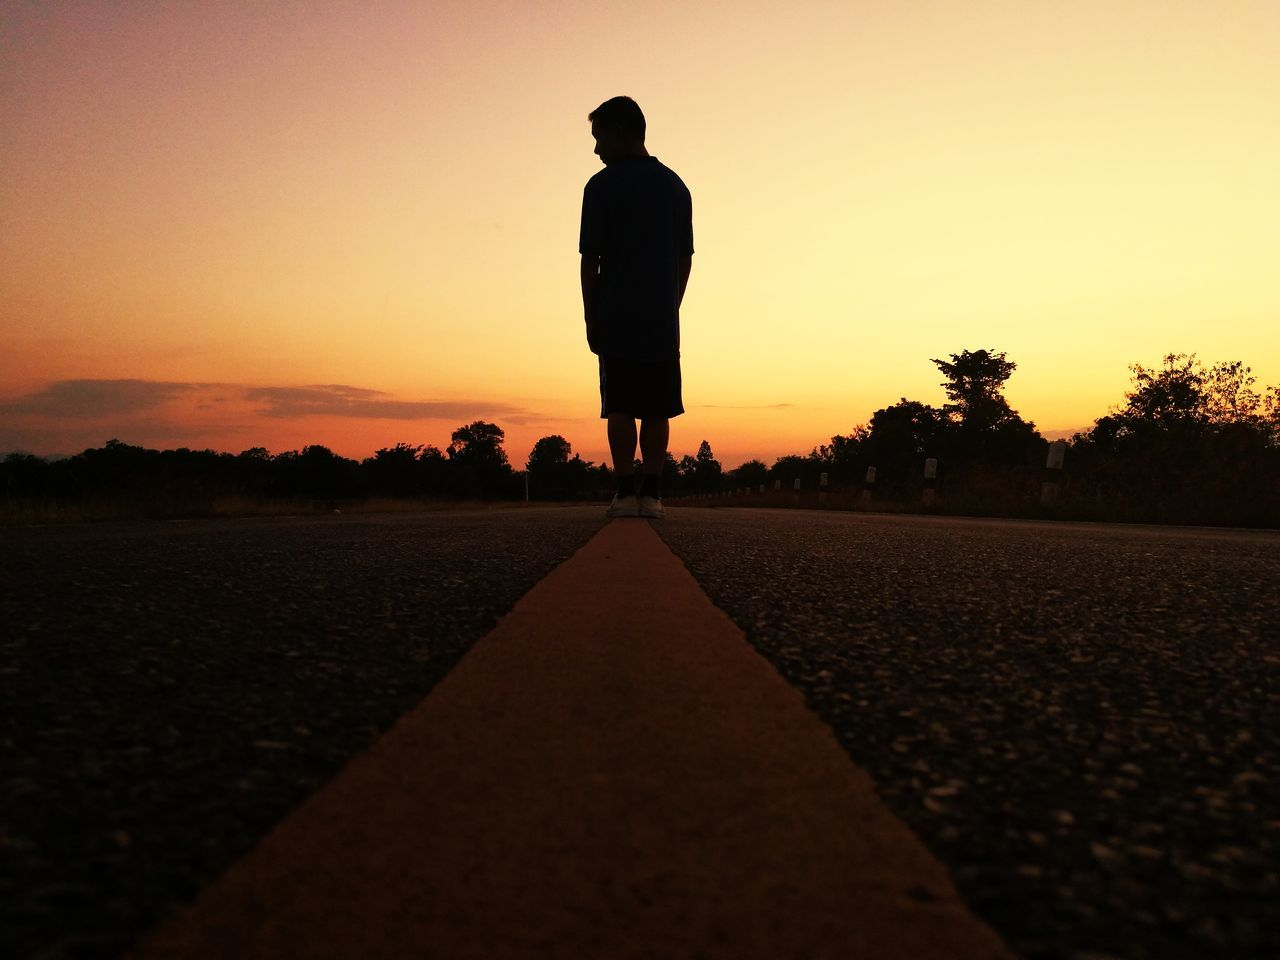 sunset, real people, one person, silhouette, full length, walking, the way forward, standing, road, men, sky, transportation, clear sky, lifestyles, outdoors, nature, day, people